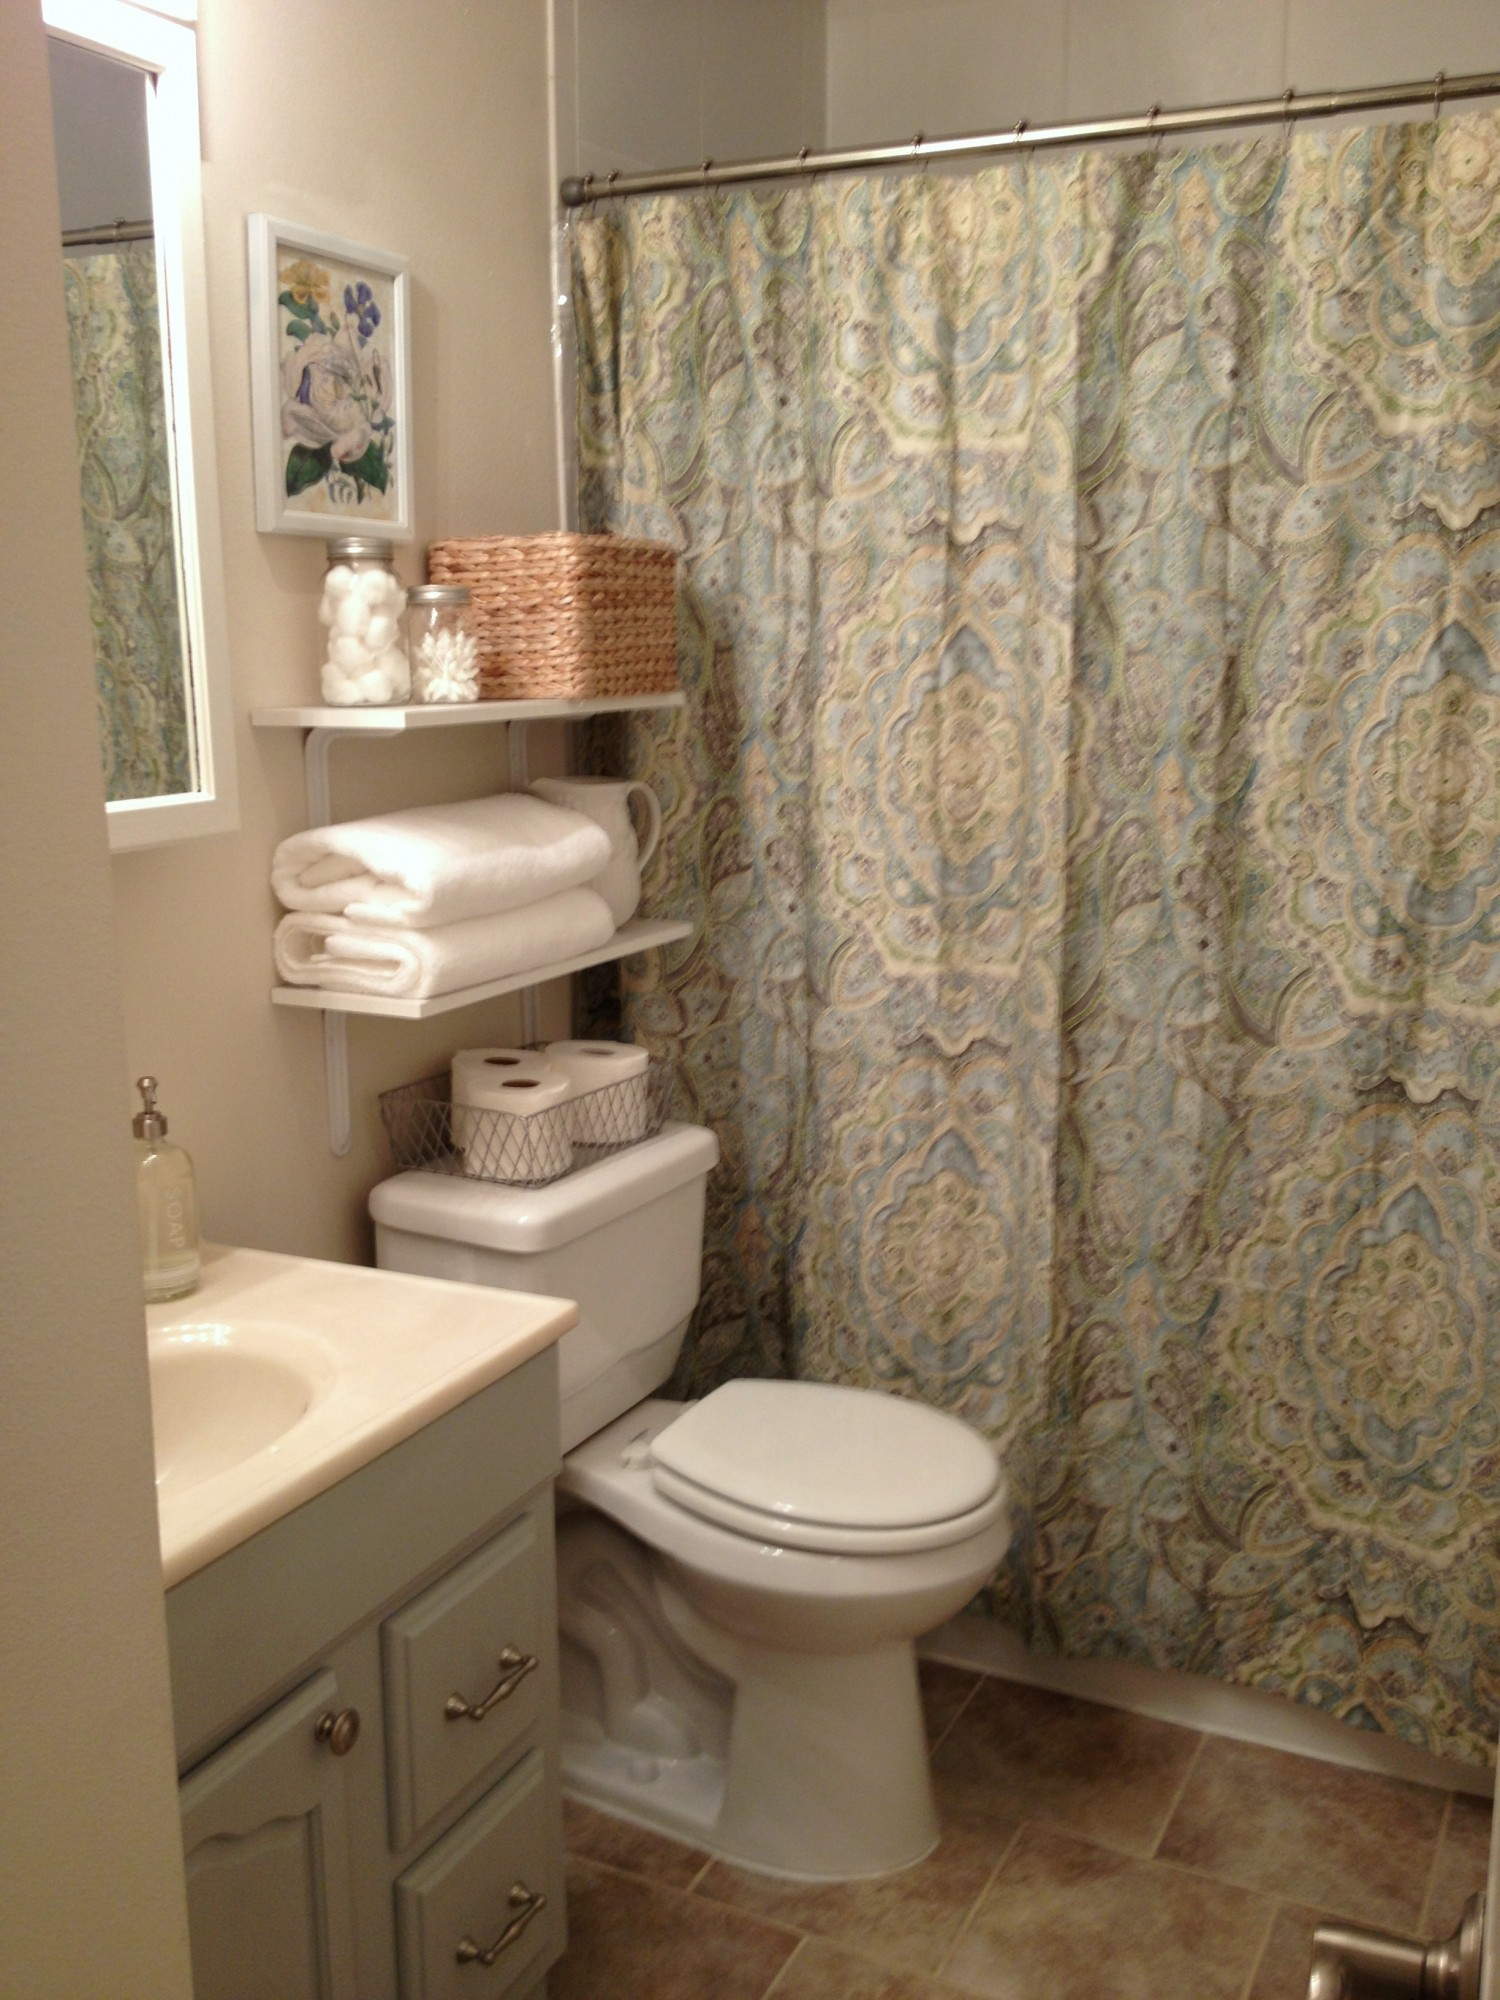 Flower Theme Bathroom Ideas For Small Spaces Design Ideas (View 3 of 10)